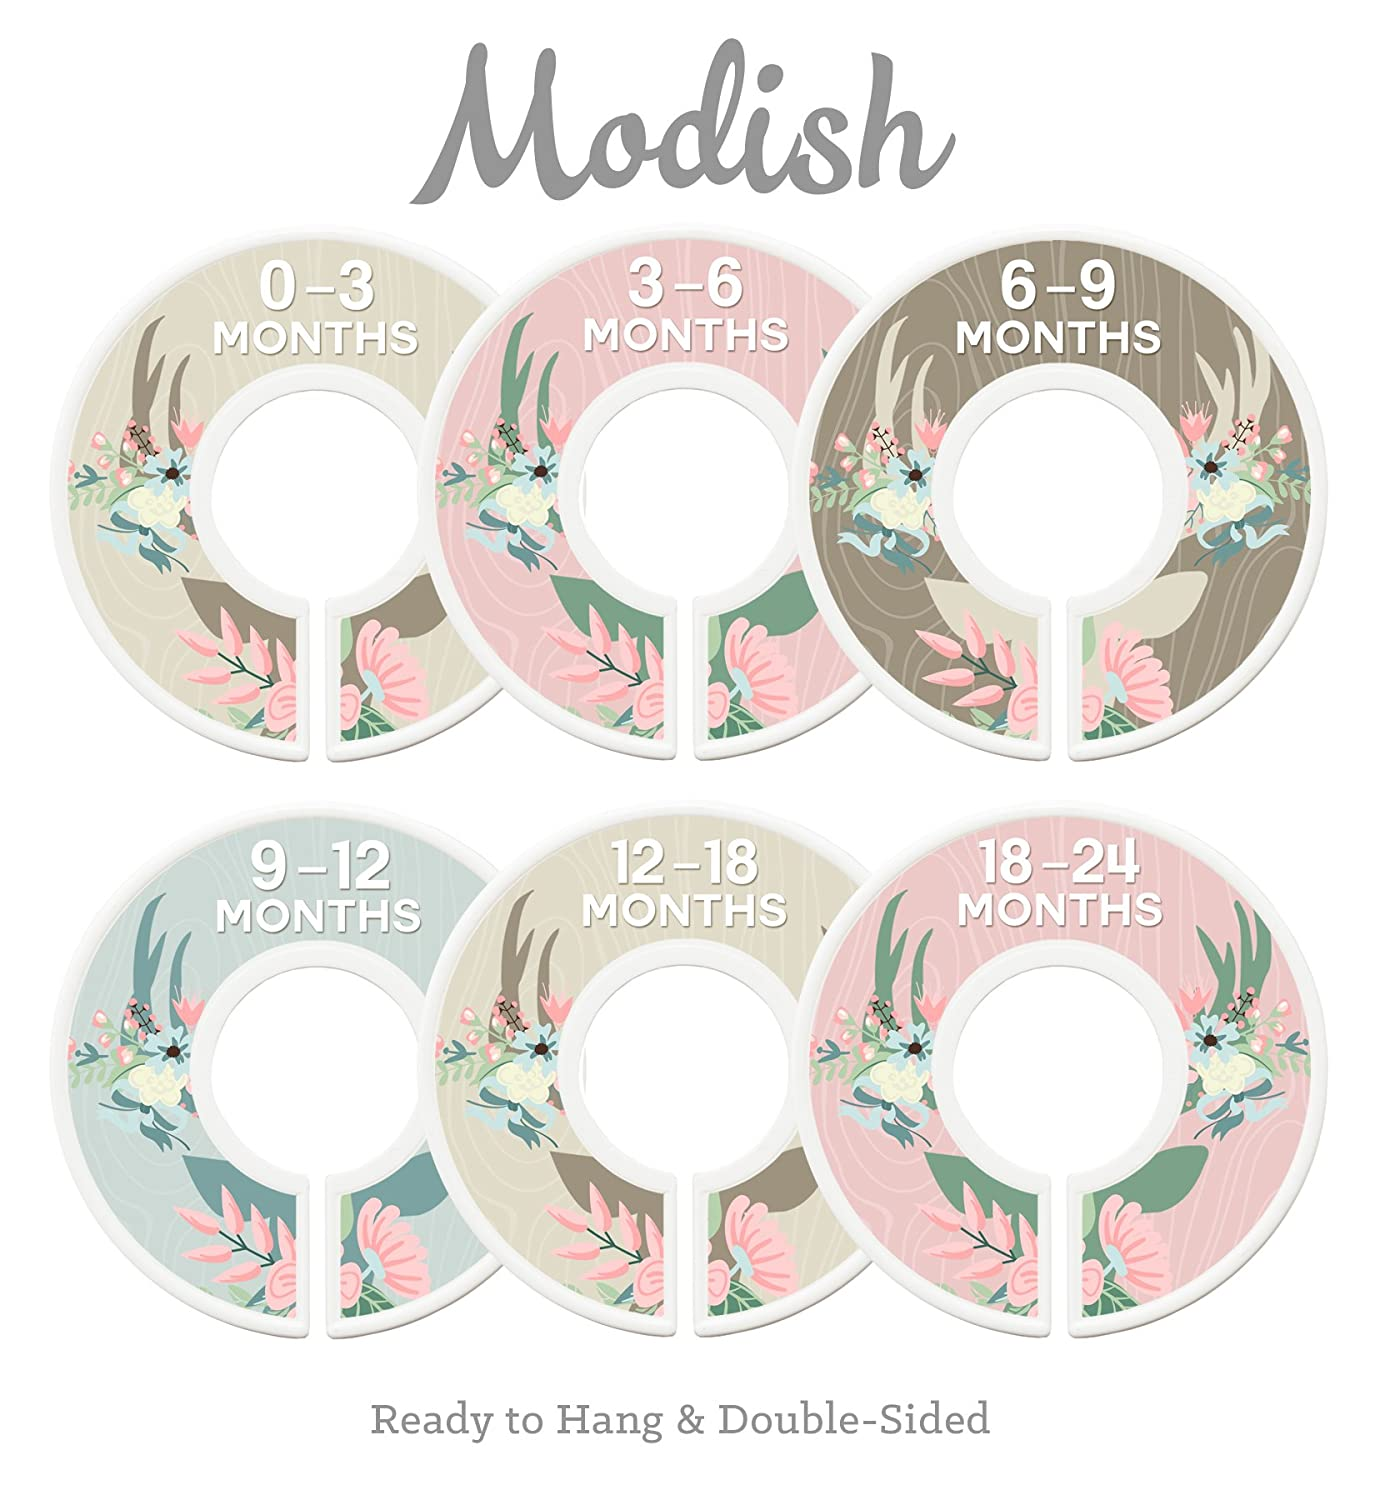 Modish Labels Baby Nursery Closet Dividers, Closet Organizers, Nursery Decor, Baby Girl, Deer, Floral Antlers, Flowers, Woodland Inc. 687847980247